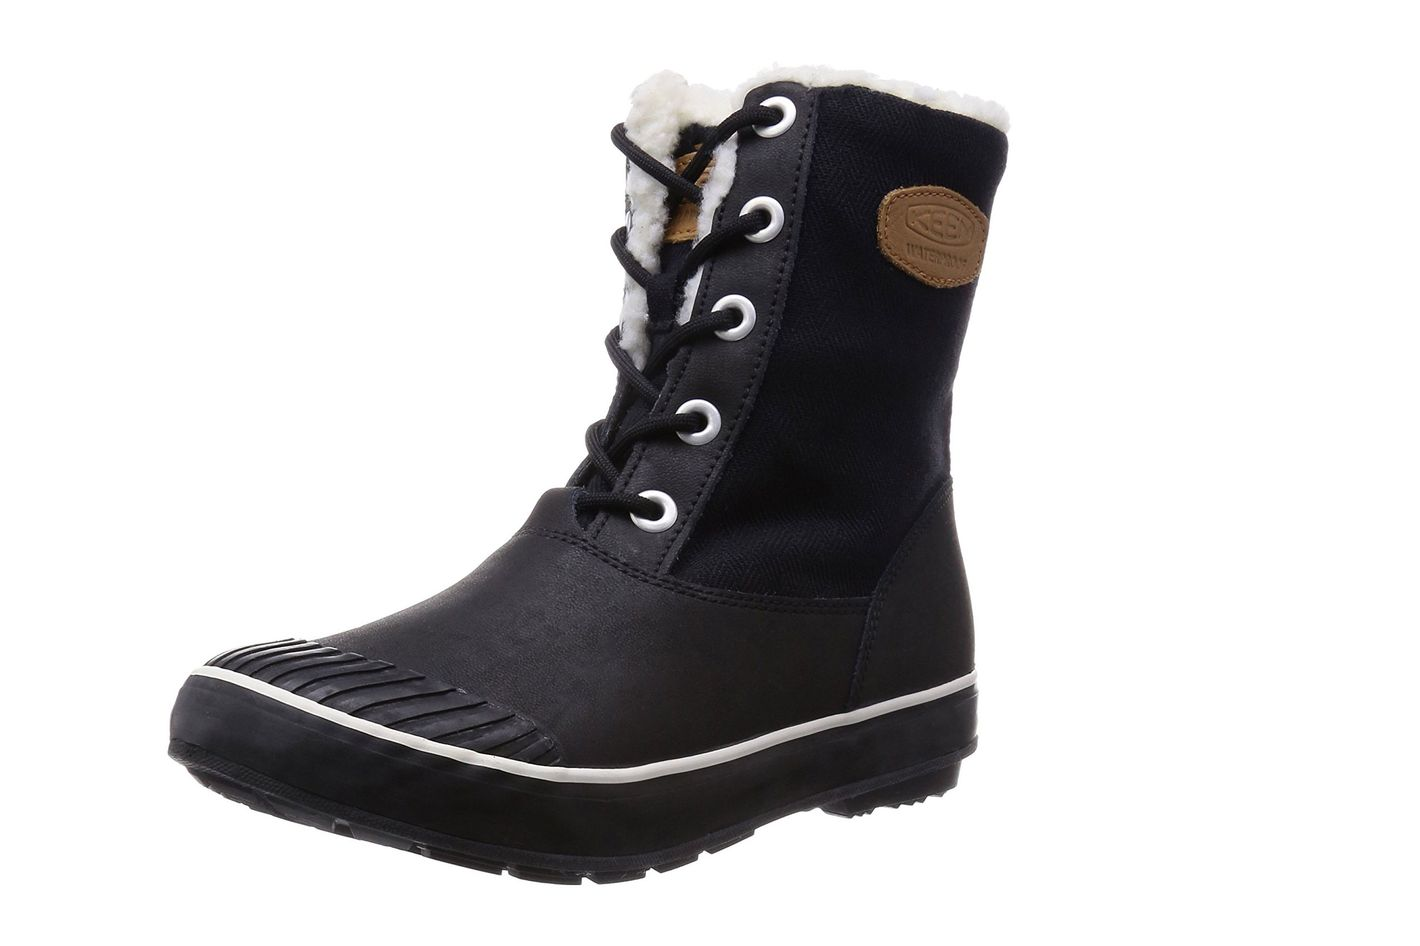 Keen Women s Elsa Waterproof Winter Boot b4e1e8c0e1